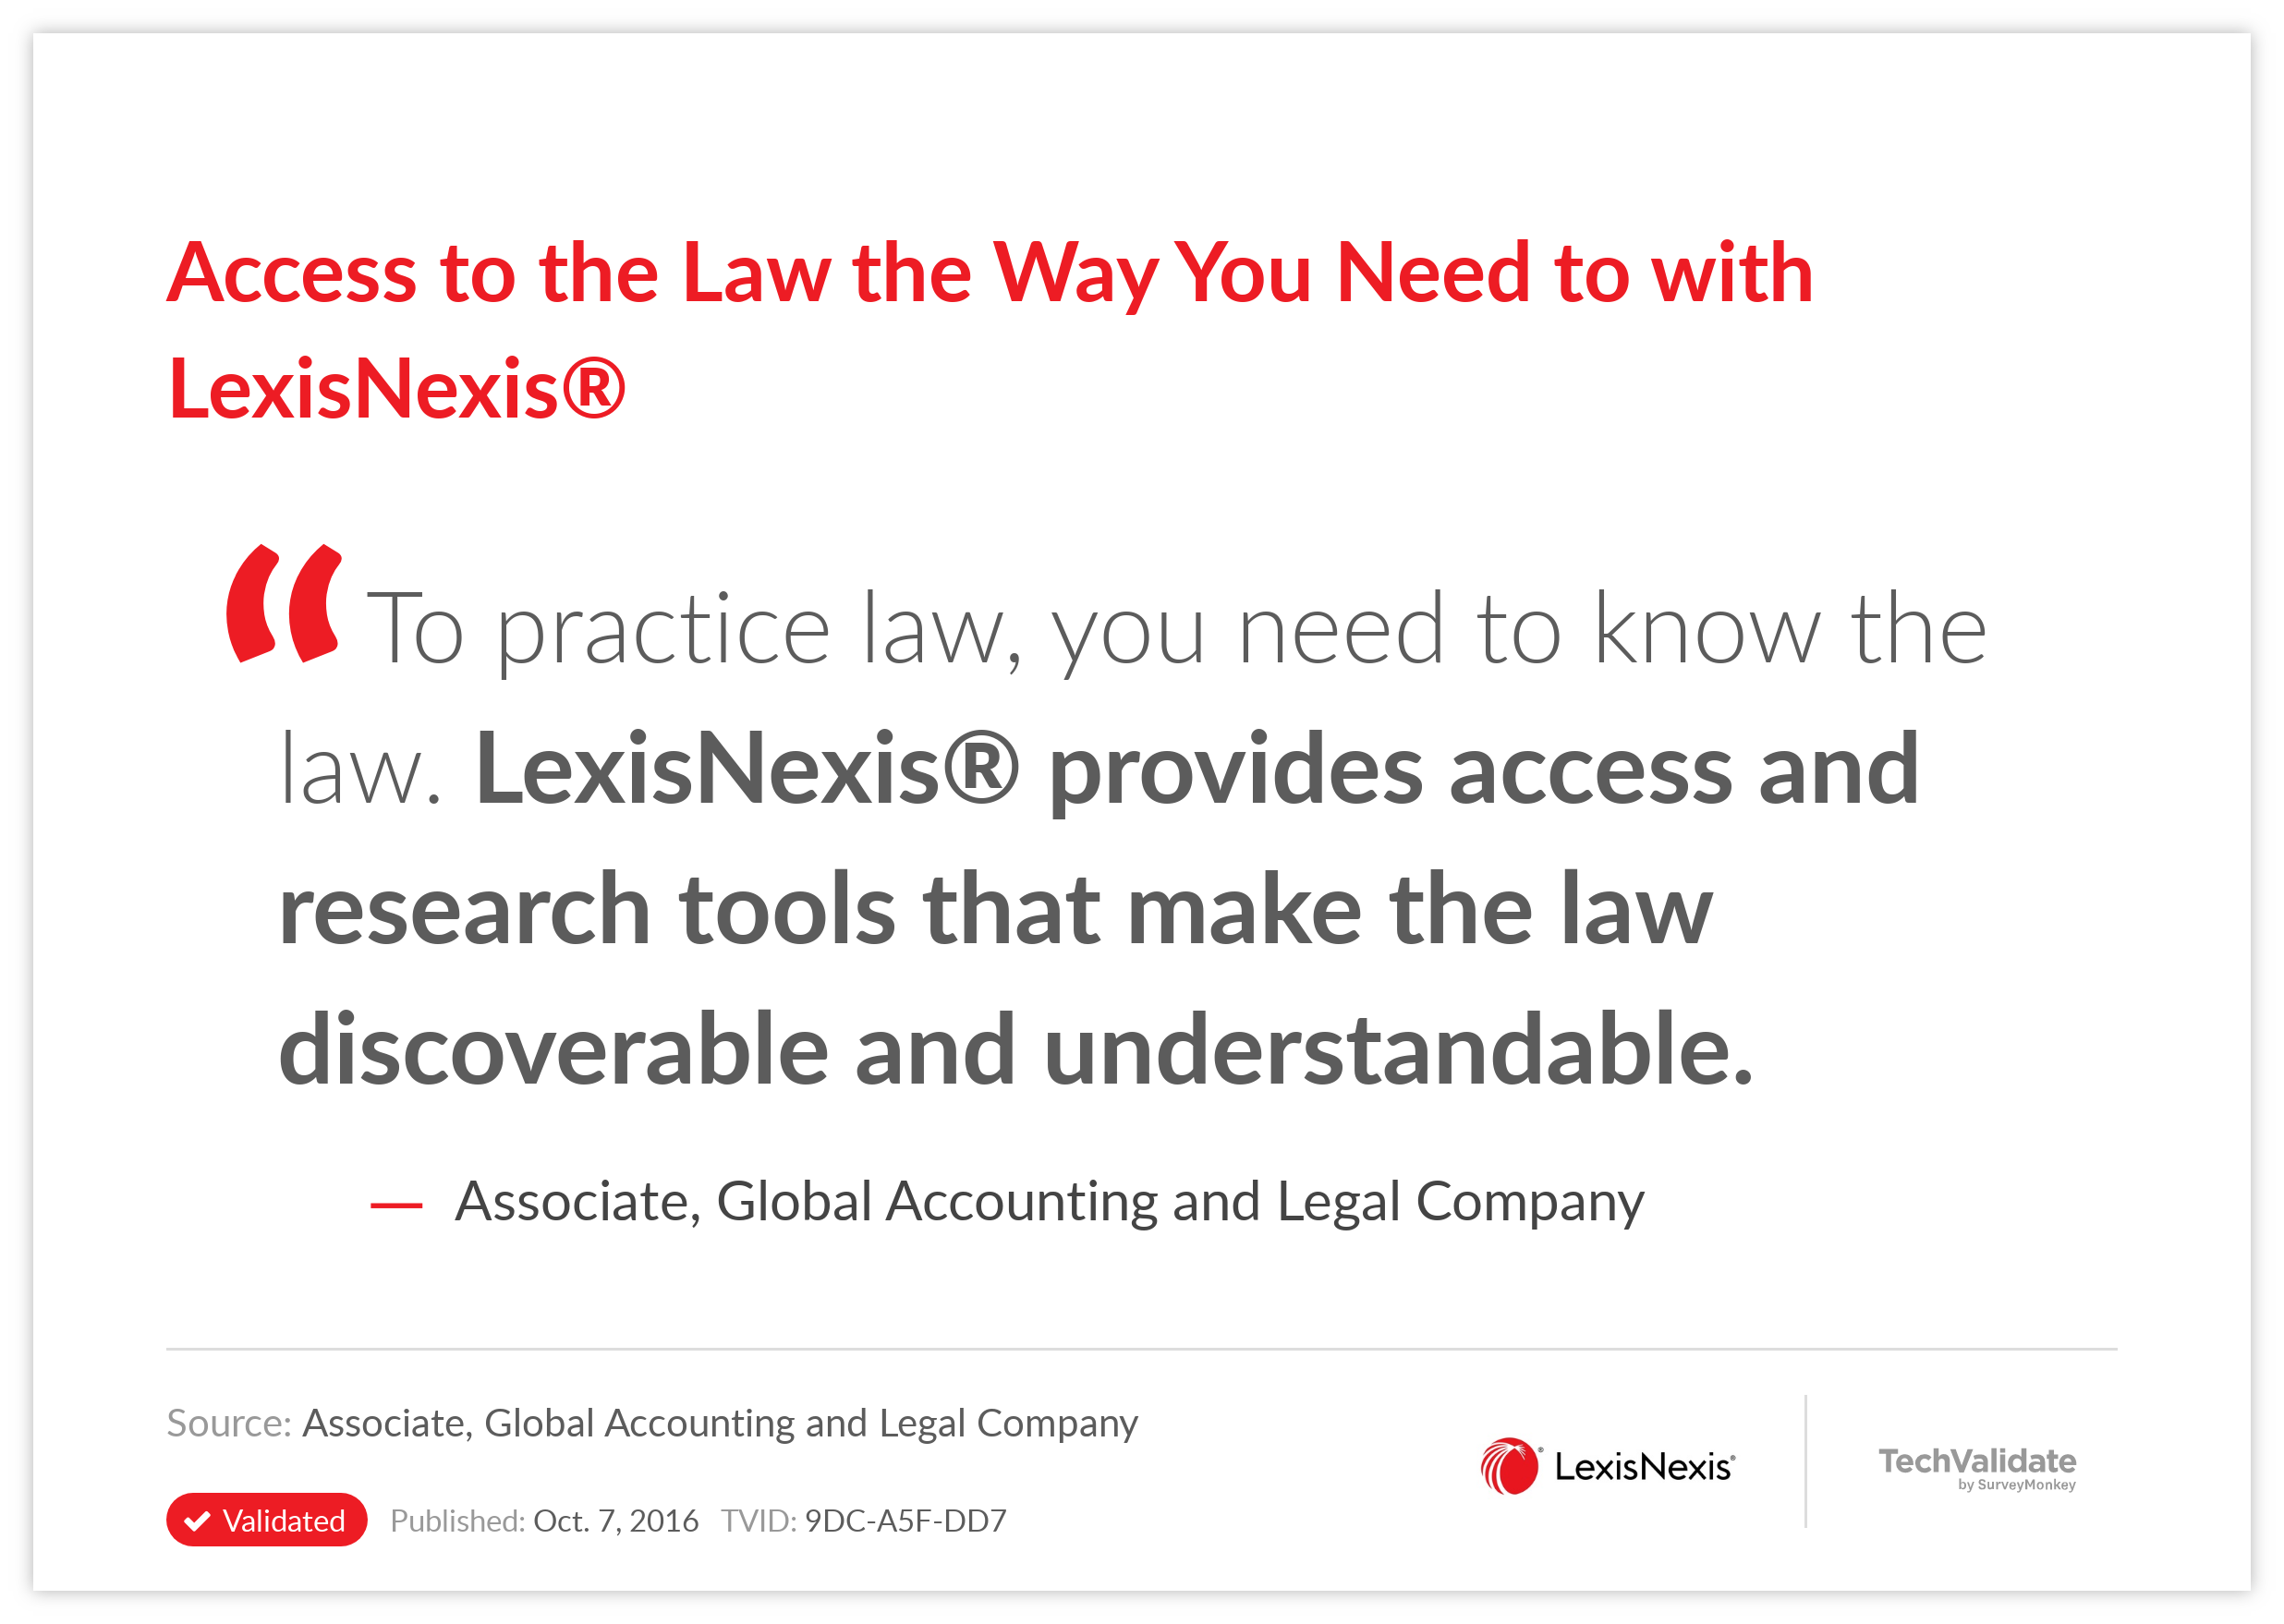 Access to the Law the Way You Need to with LexisNexis®